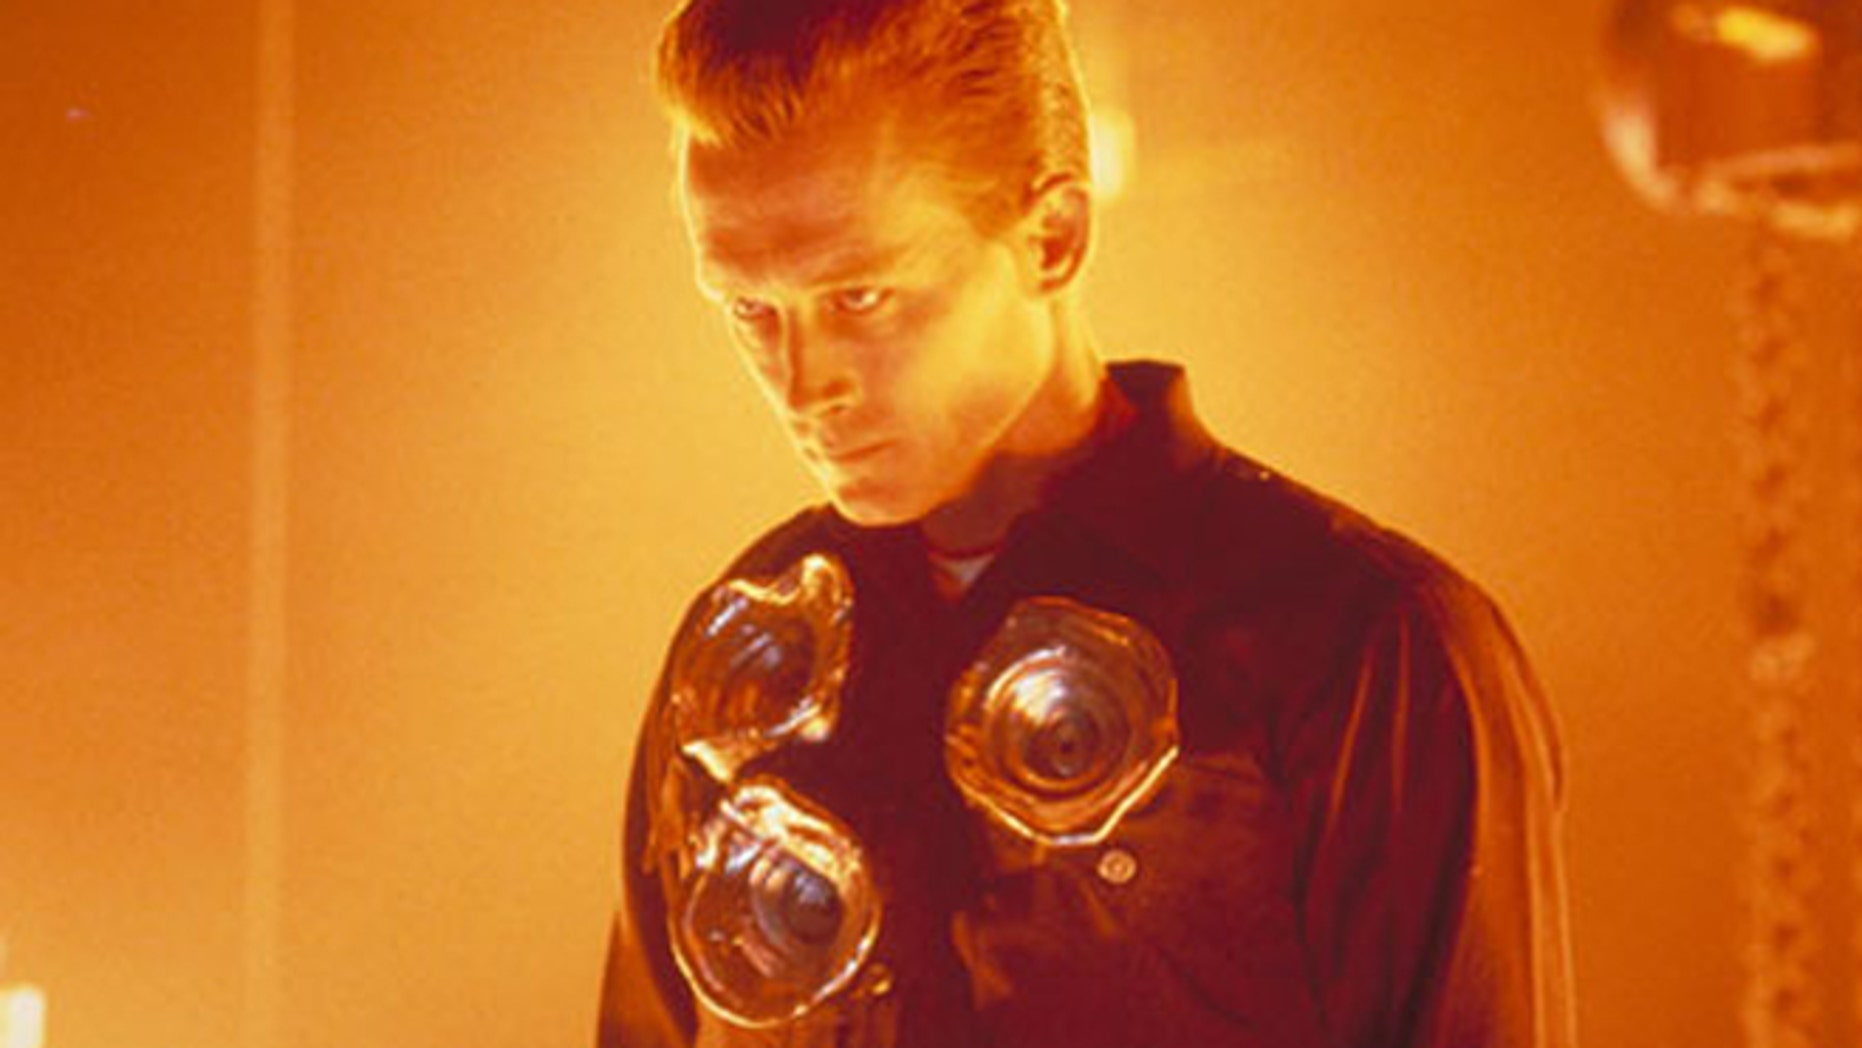 """A robot from the future is made entirely of liquid metal in the film """"Terminator 2: Judgment Day."""" But liquid body armor may be less fiction, more reality for modern soldiers."""